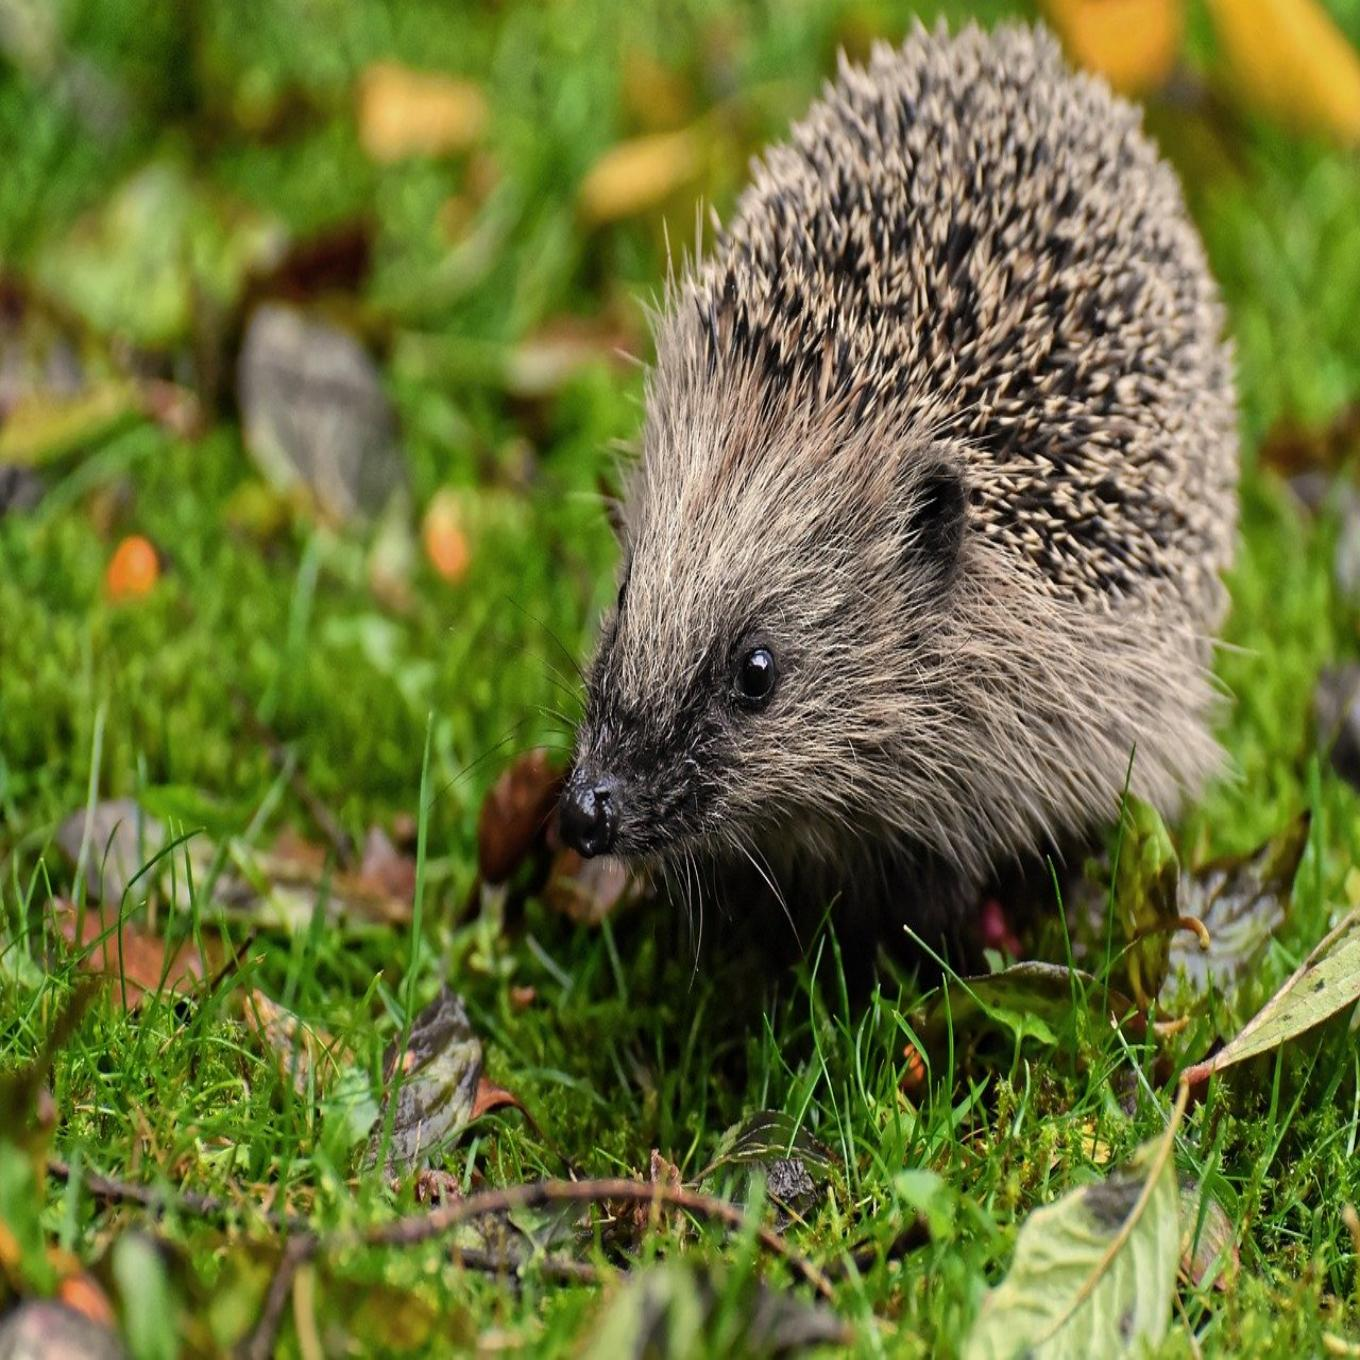 A hedgehog in the grass